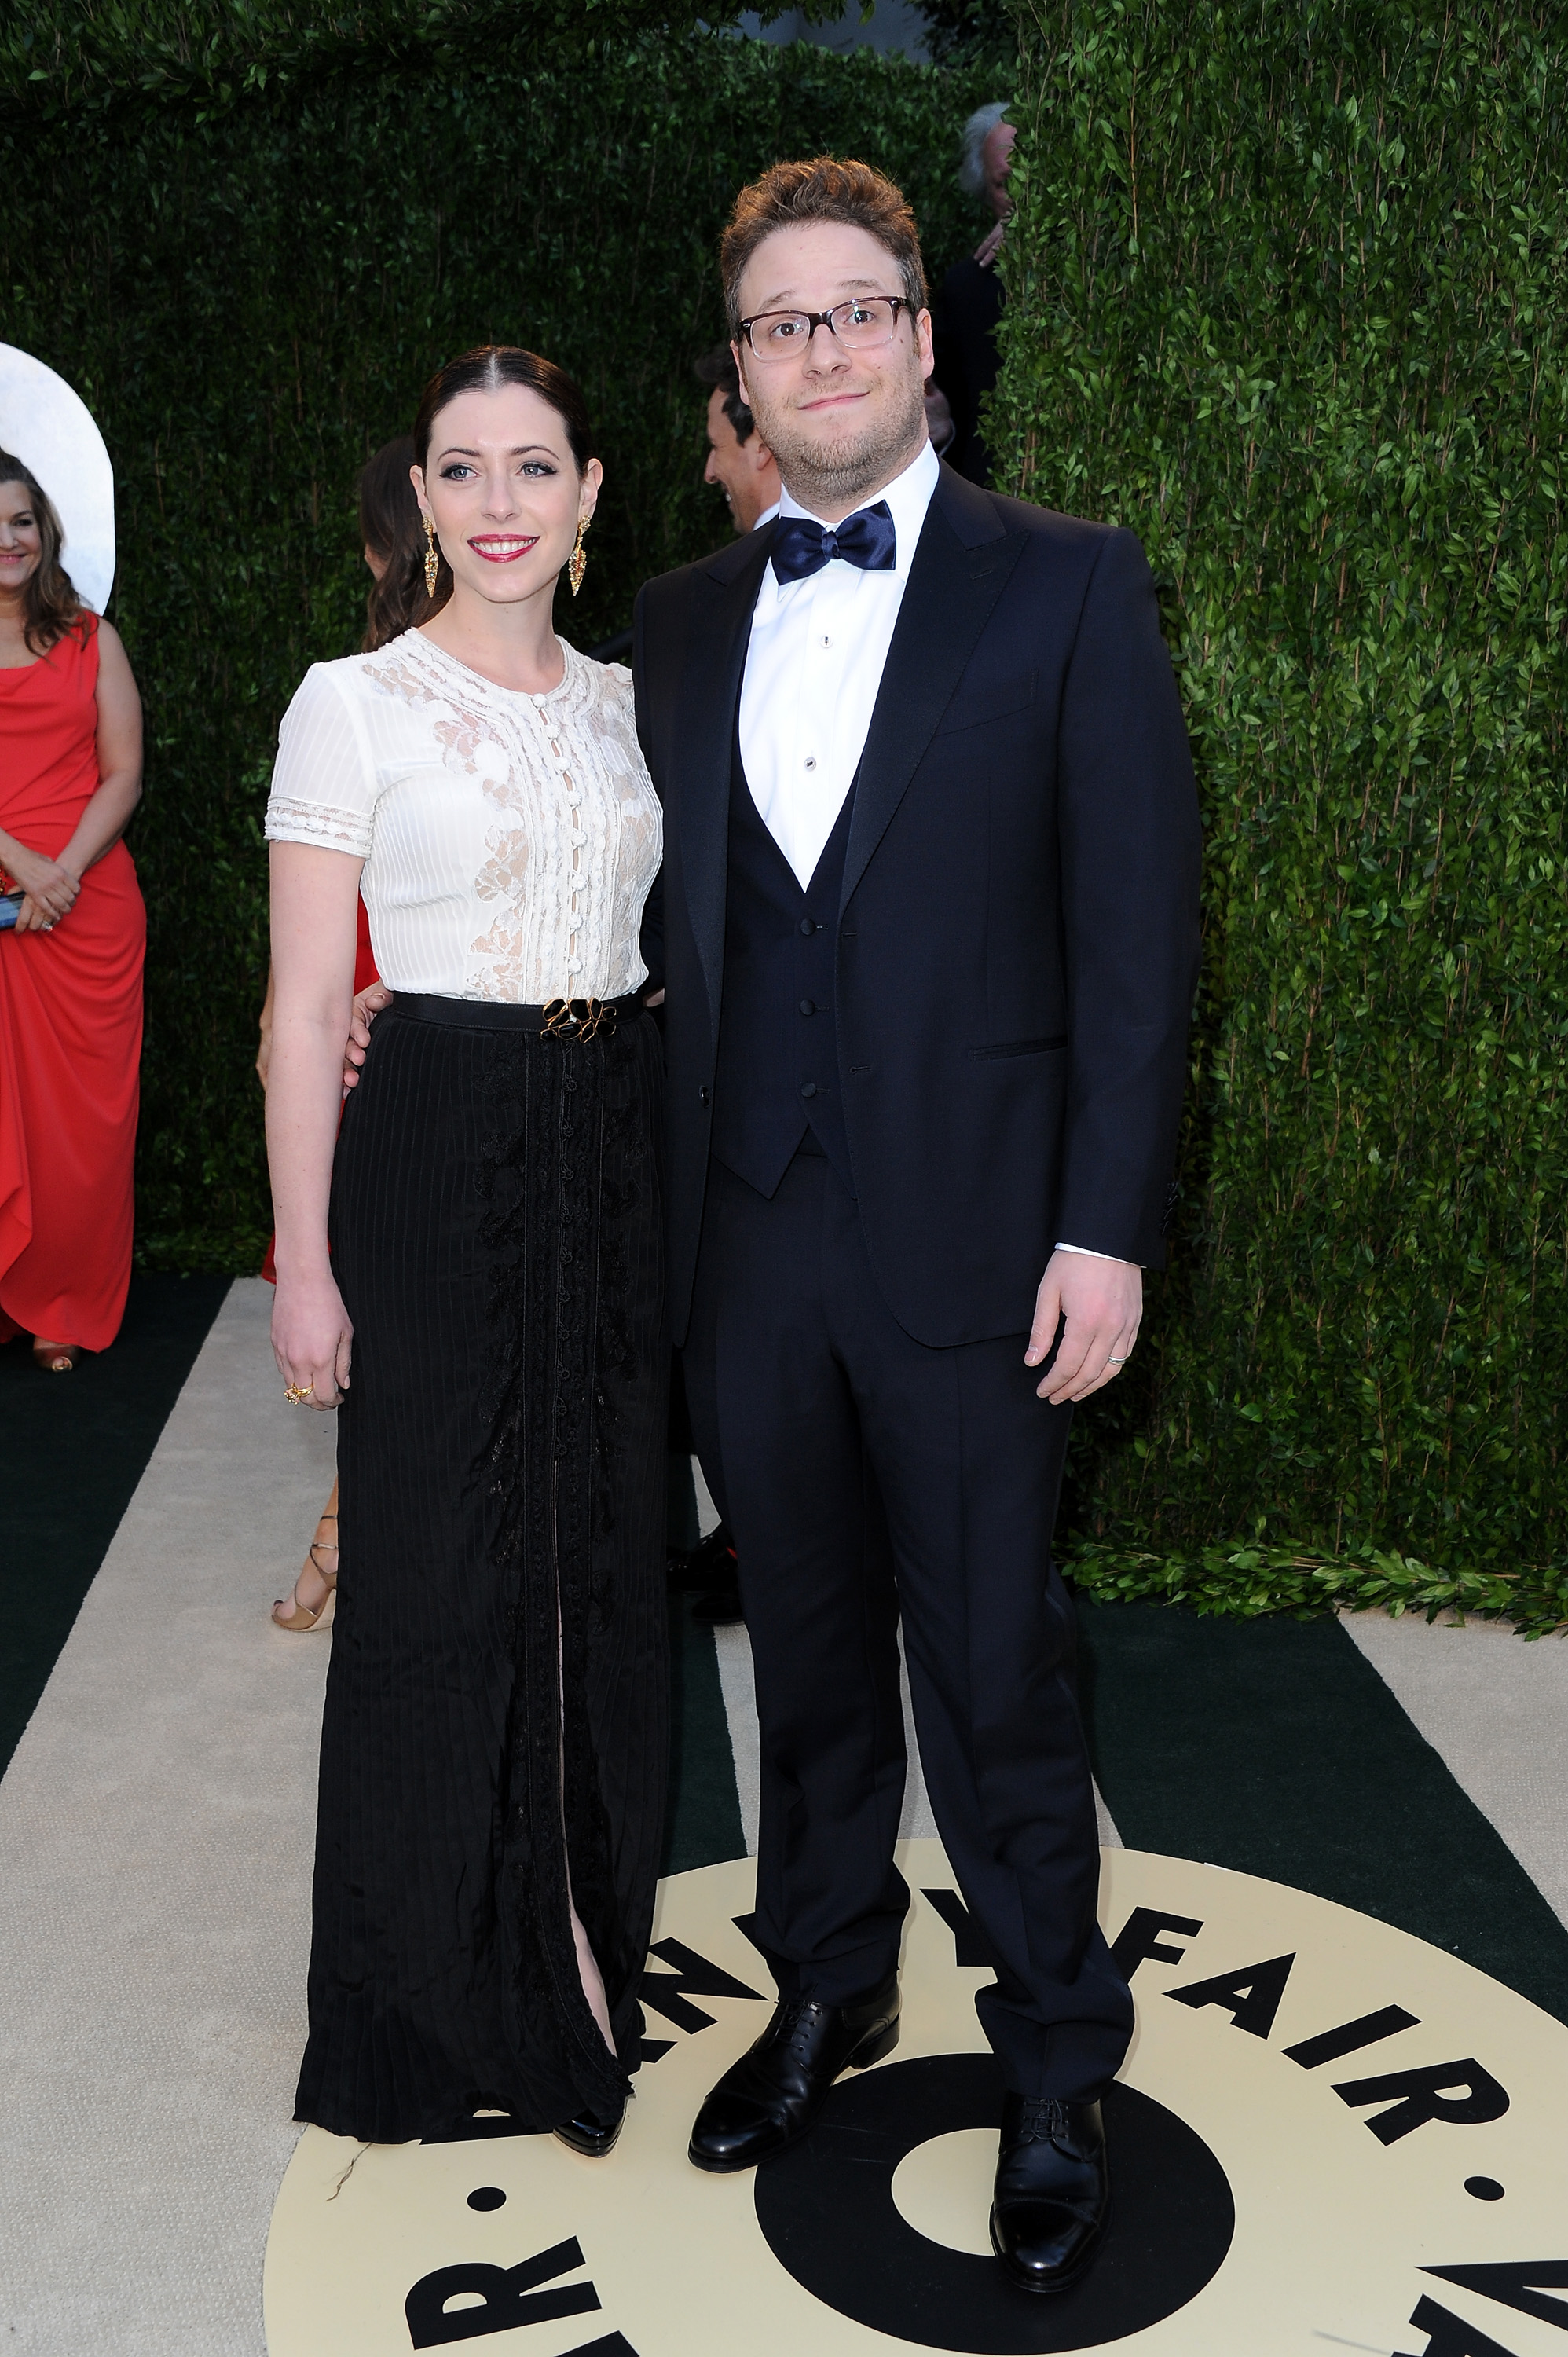 Lauren Miller and Seth Rogen arrived at the Vanity Fair Oscar Party on Sunday night.